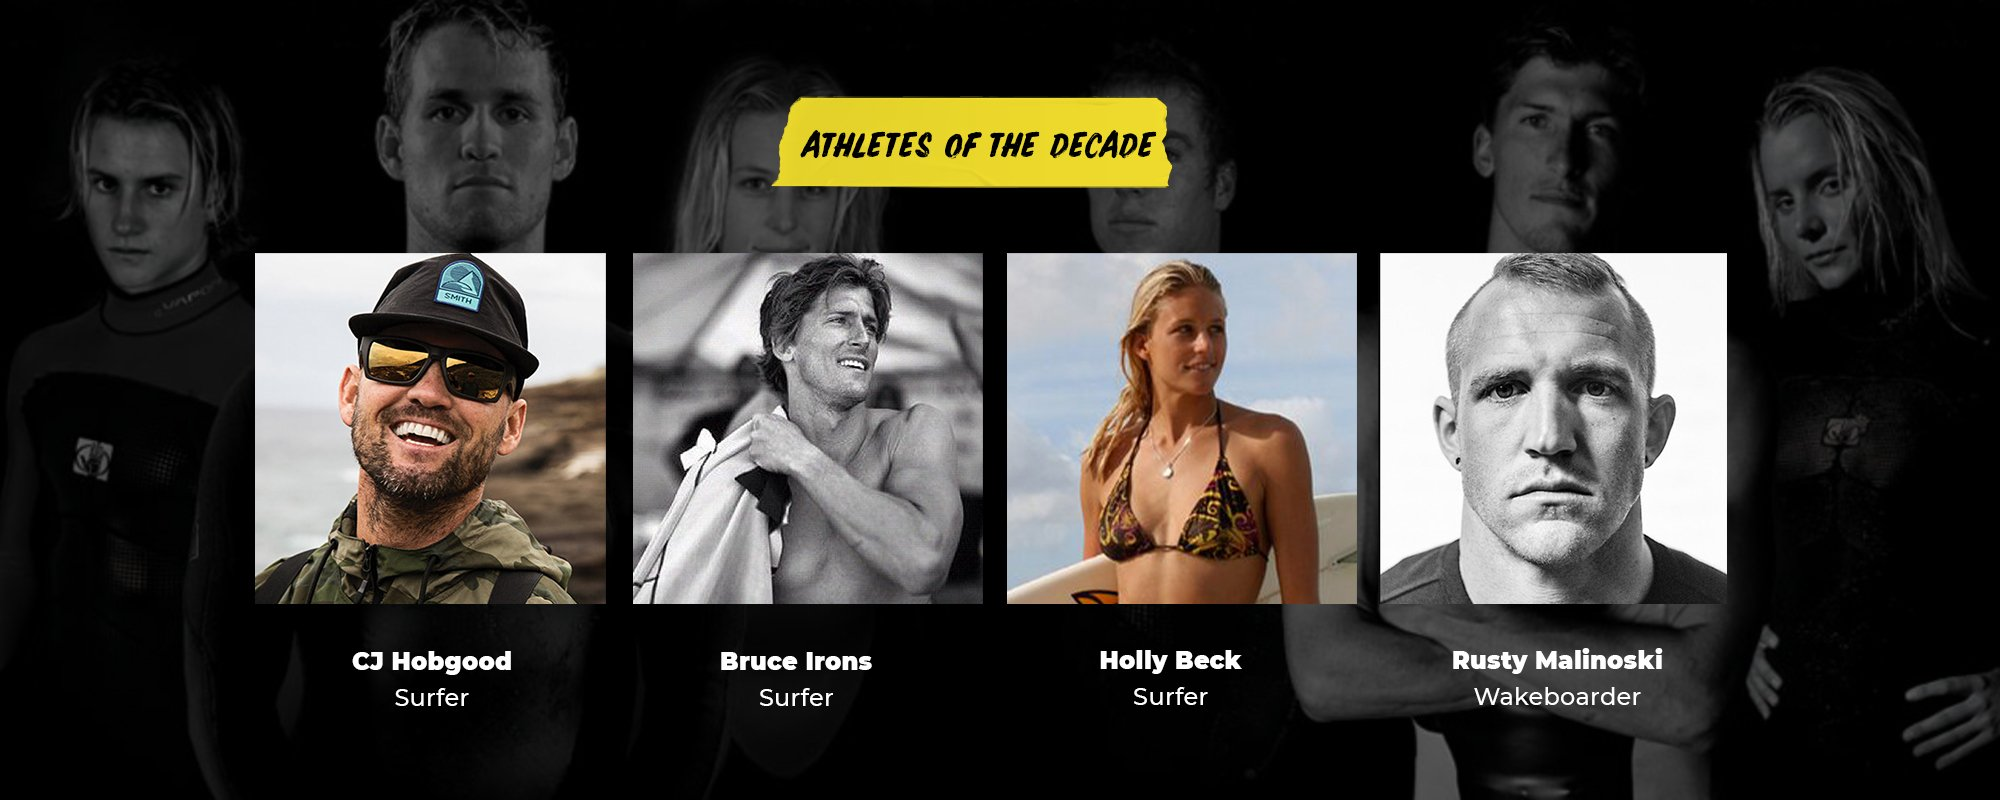 Athletes of the Decade | CJ Hobgood, Surfer | Bruce Irons, Surfer | Holly Beck, Surfer | Rusty Malinoski, Wakeboarder